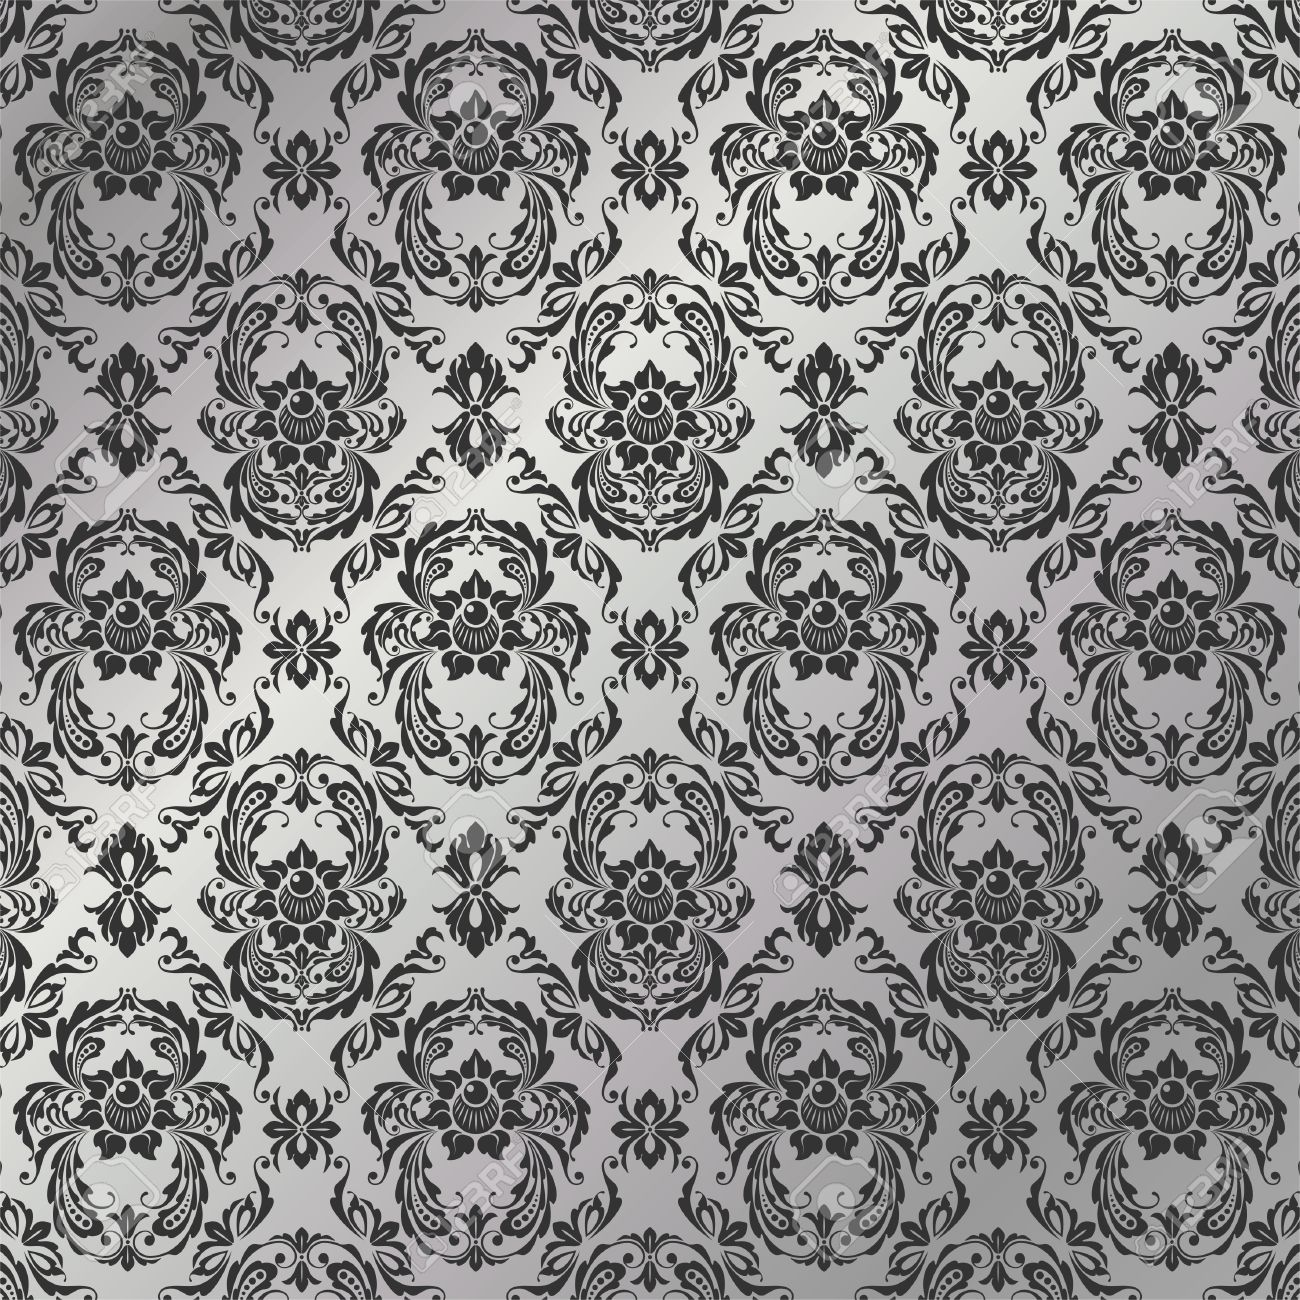 graceful decorative wallpaper of silvery tones stock vector 5047294 - Decorative Wallpaper